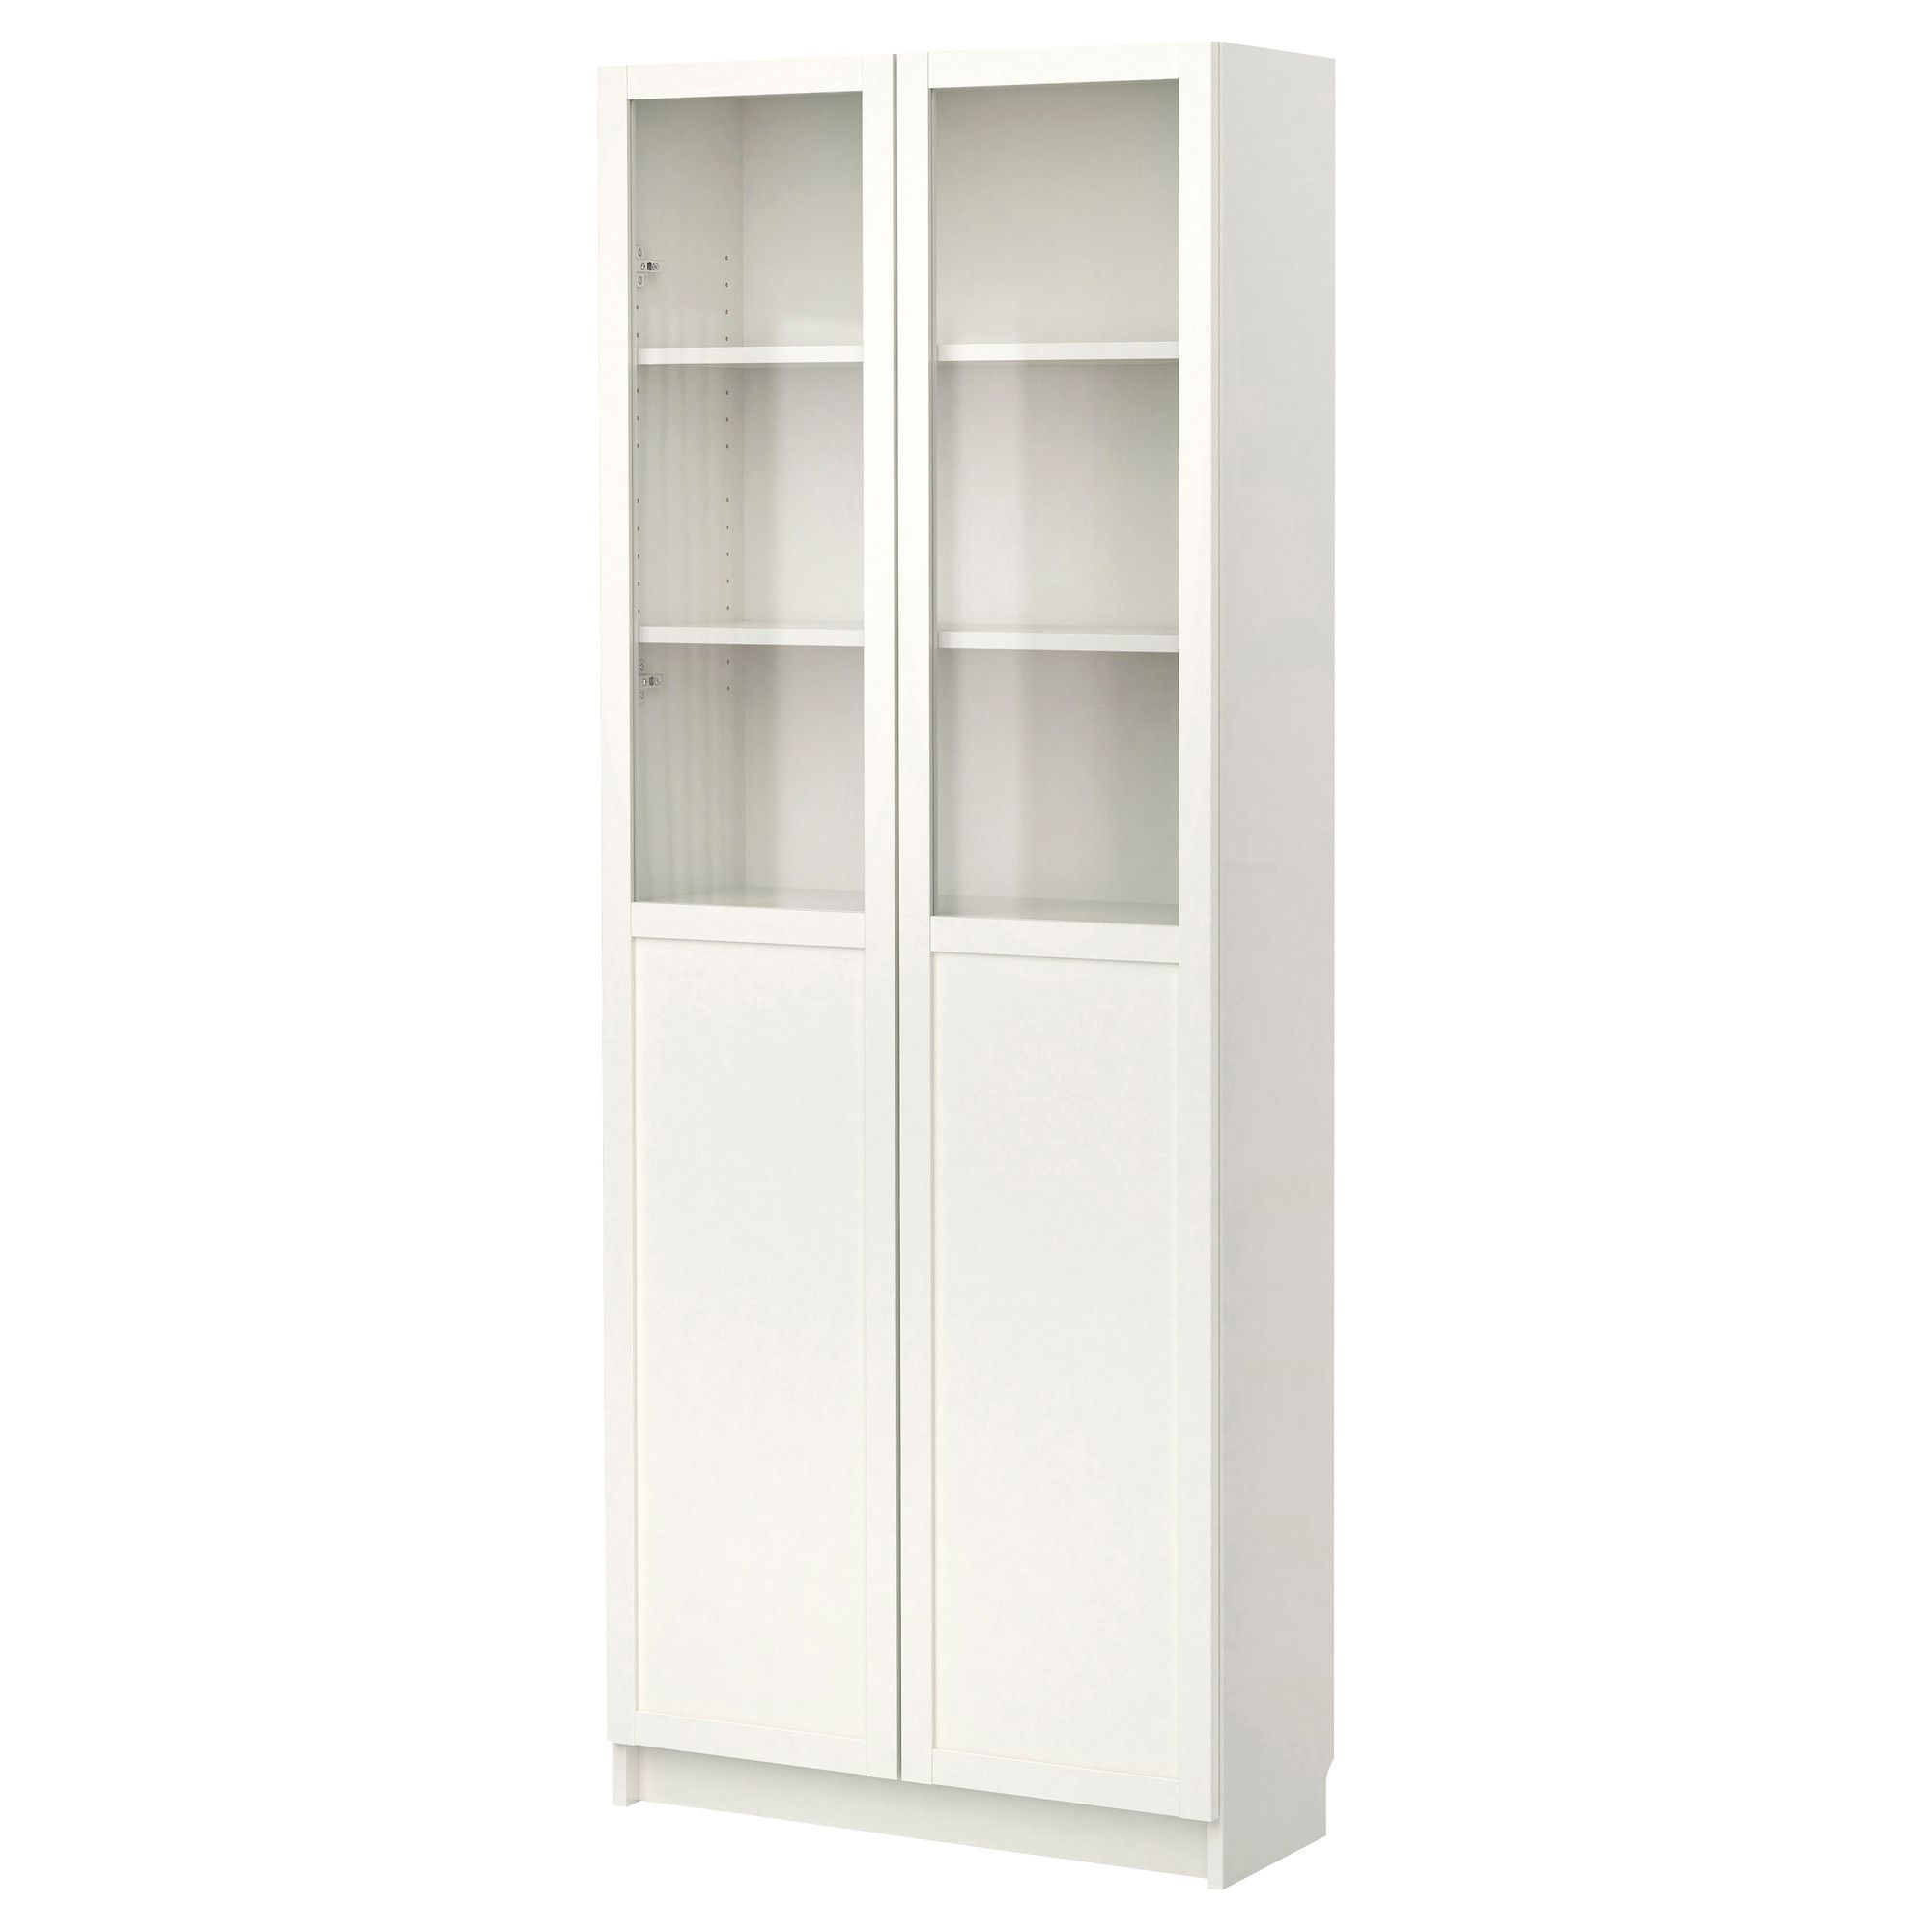 Ikea Billy Regal Weiß billy bookcase white ikea 150 allows display space and